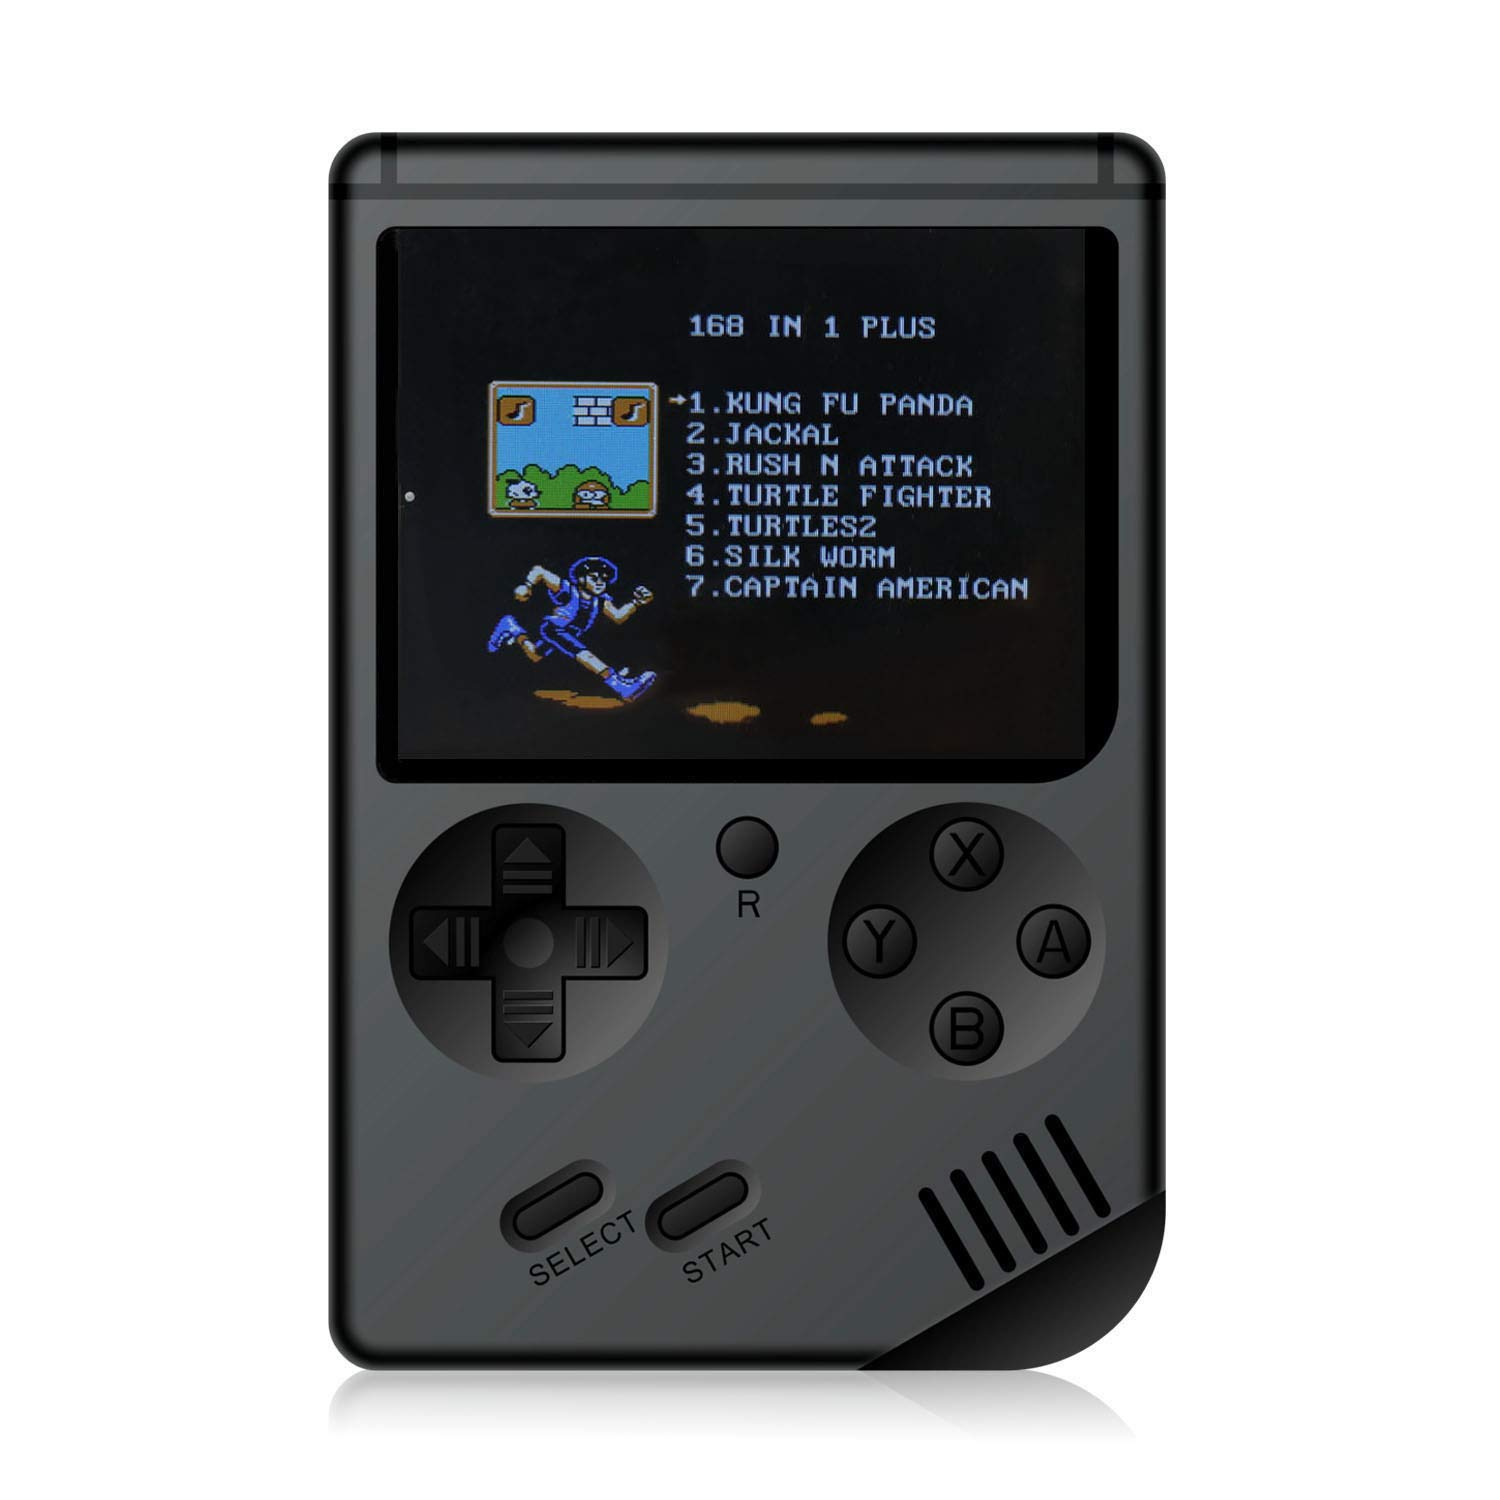 JAFATOY Retro Handheld Games Console - 168 Classic Games 8 Bit Games 3 inch Screen Video Games with AV Cable Play on TV (Black) by JAFATOY (Image #1)